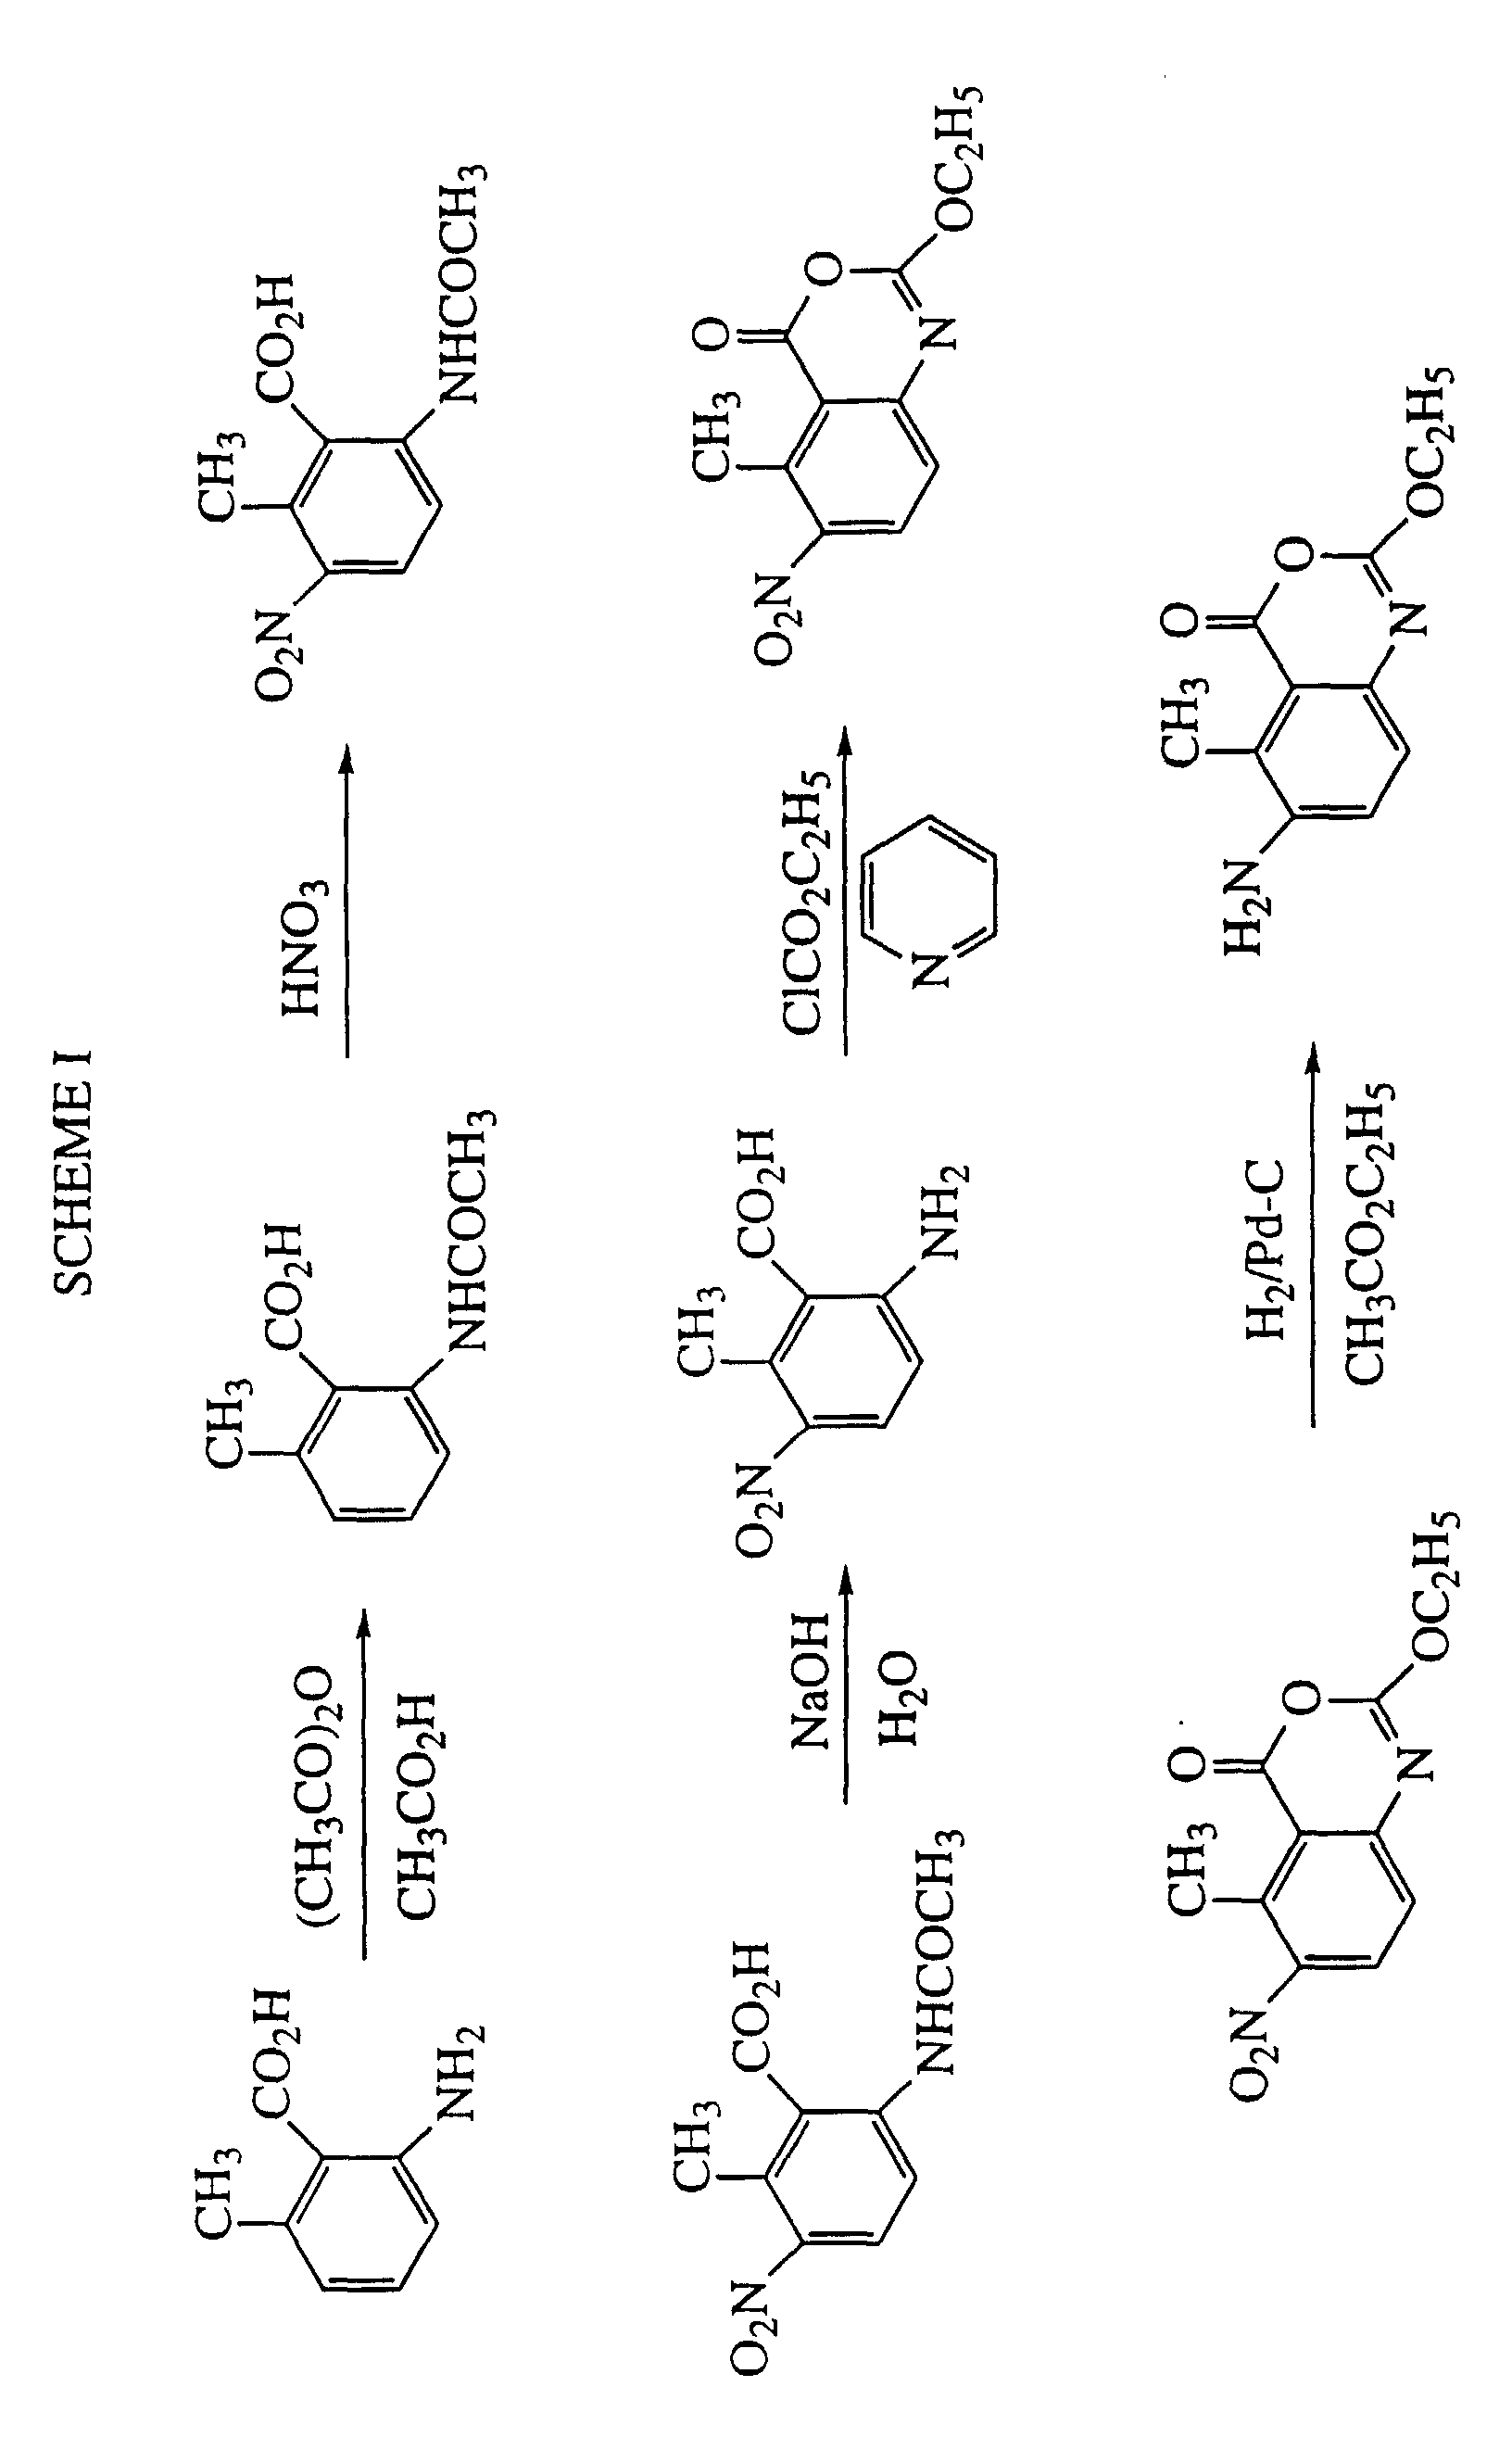 synthesis of isatin based caspase inhibitors Novel, dual purpose, mobsam-based, specific inhibitors for mmp-2/9 to image  and  v synthesis and evaluation of a [18f]bodipy-labeled caspase-inhibitor   kopka k, schober o, schafers m, haufe g synthesis of 7-halogenated isatin.